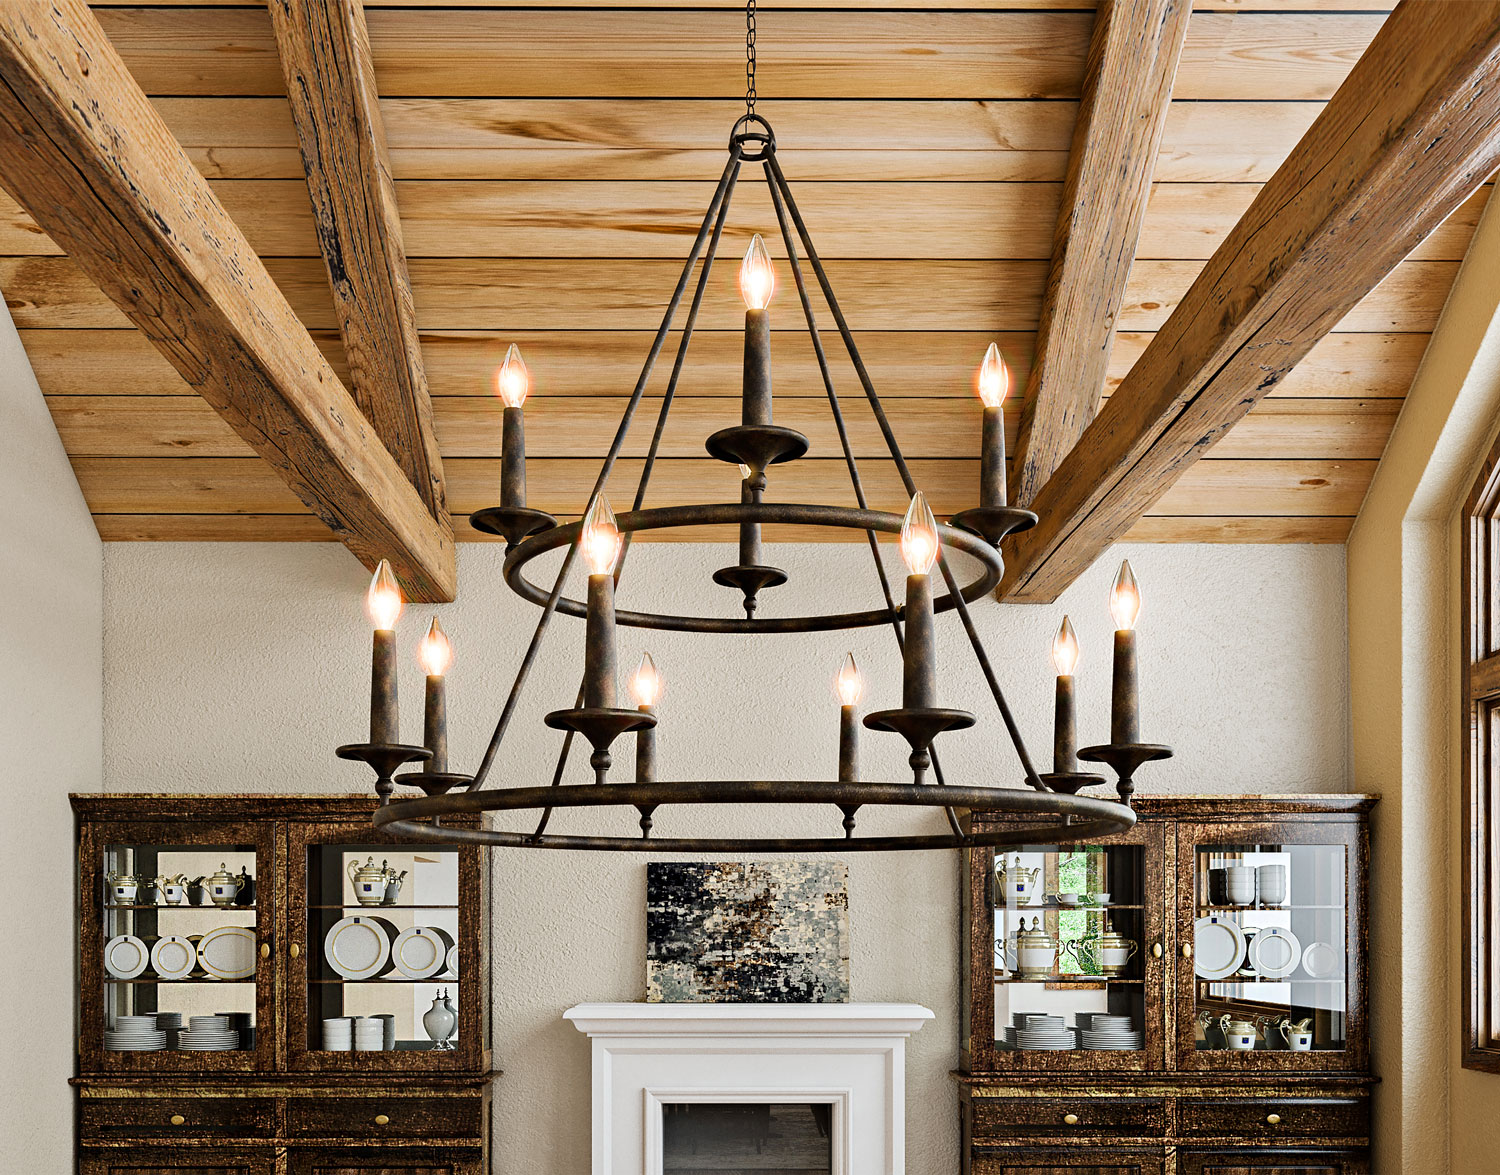 If Your Home Is Blessed With High Ceilings Look No Further Than The Quoizels Tiered Voyager Chandelier Composed Of Hand Forged Iron In A Bronze Finish